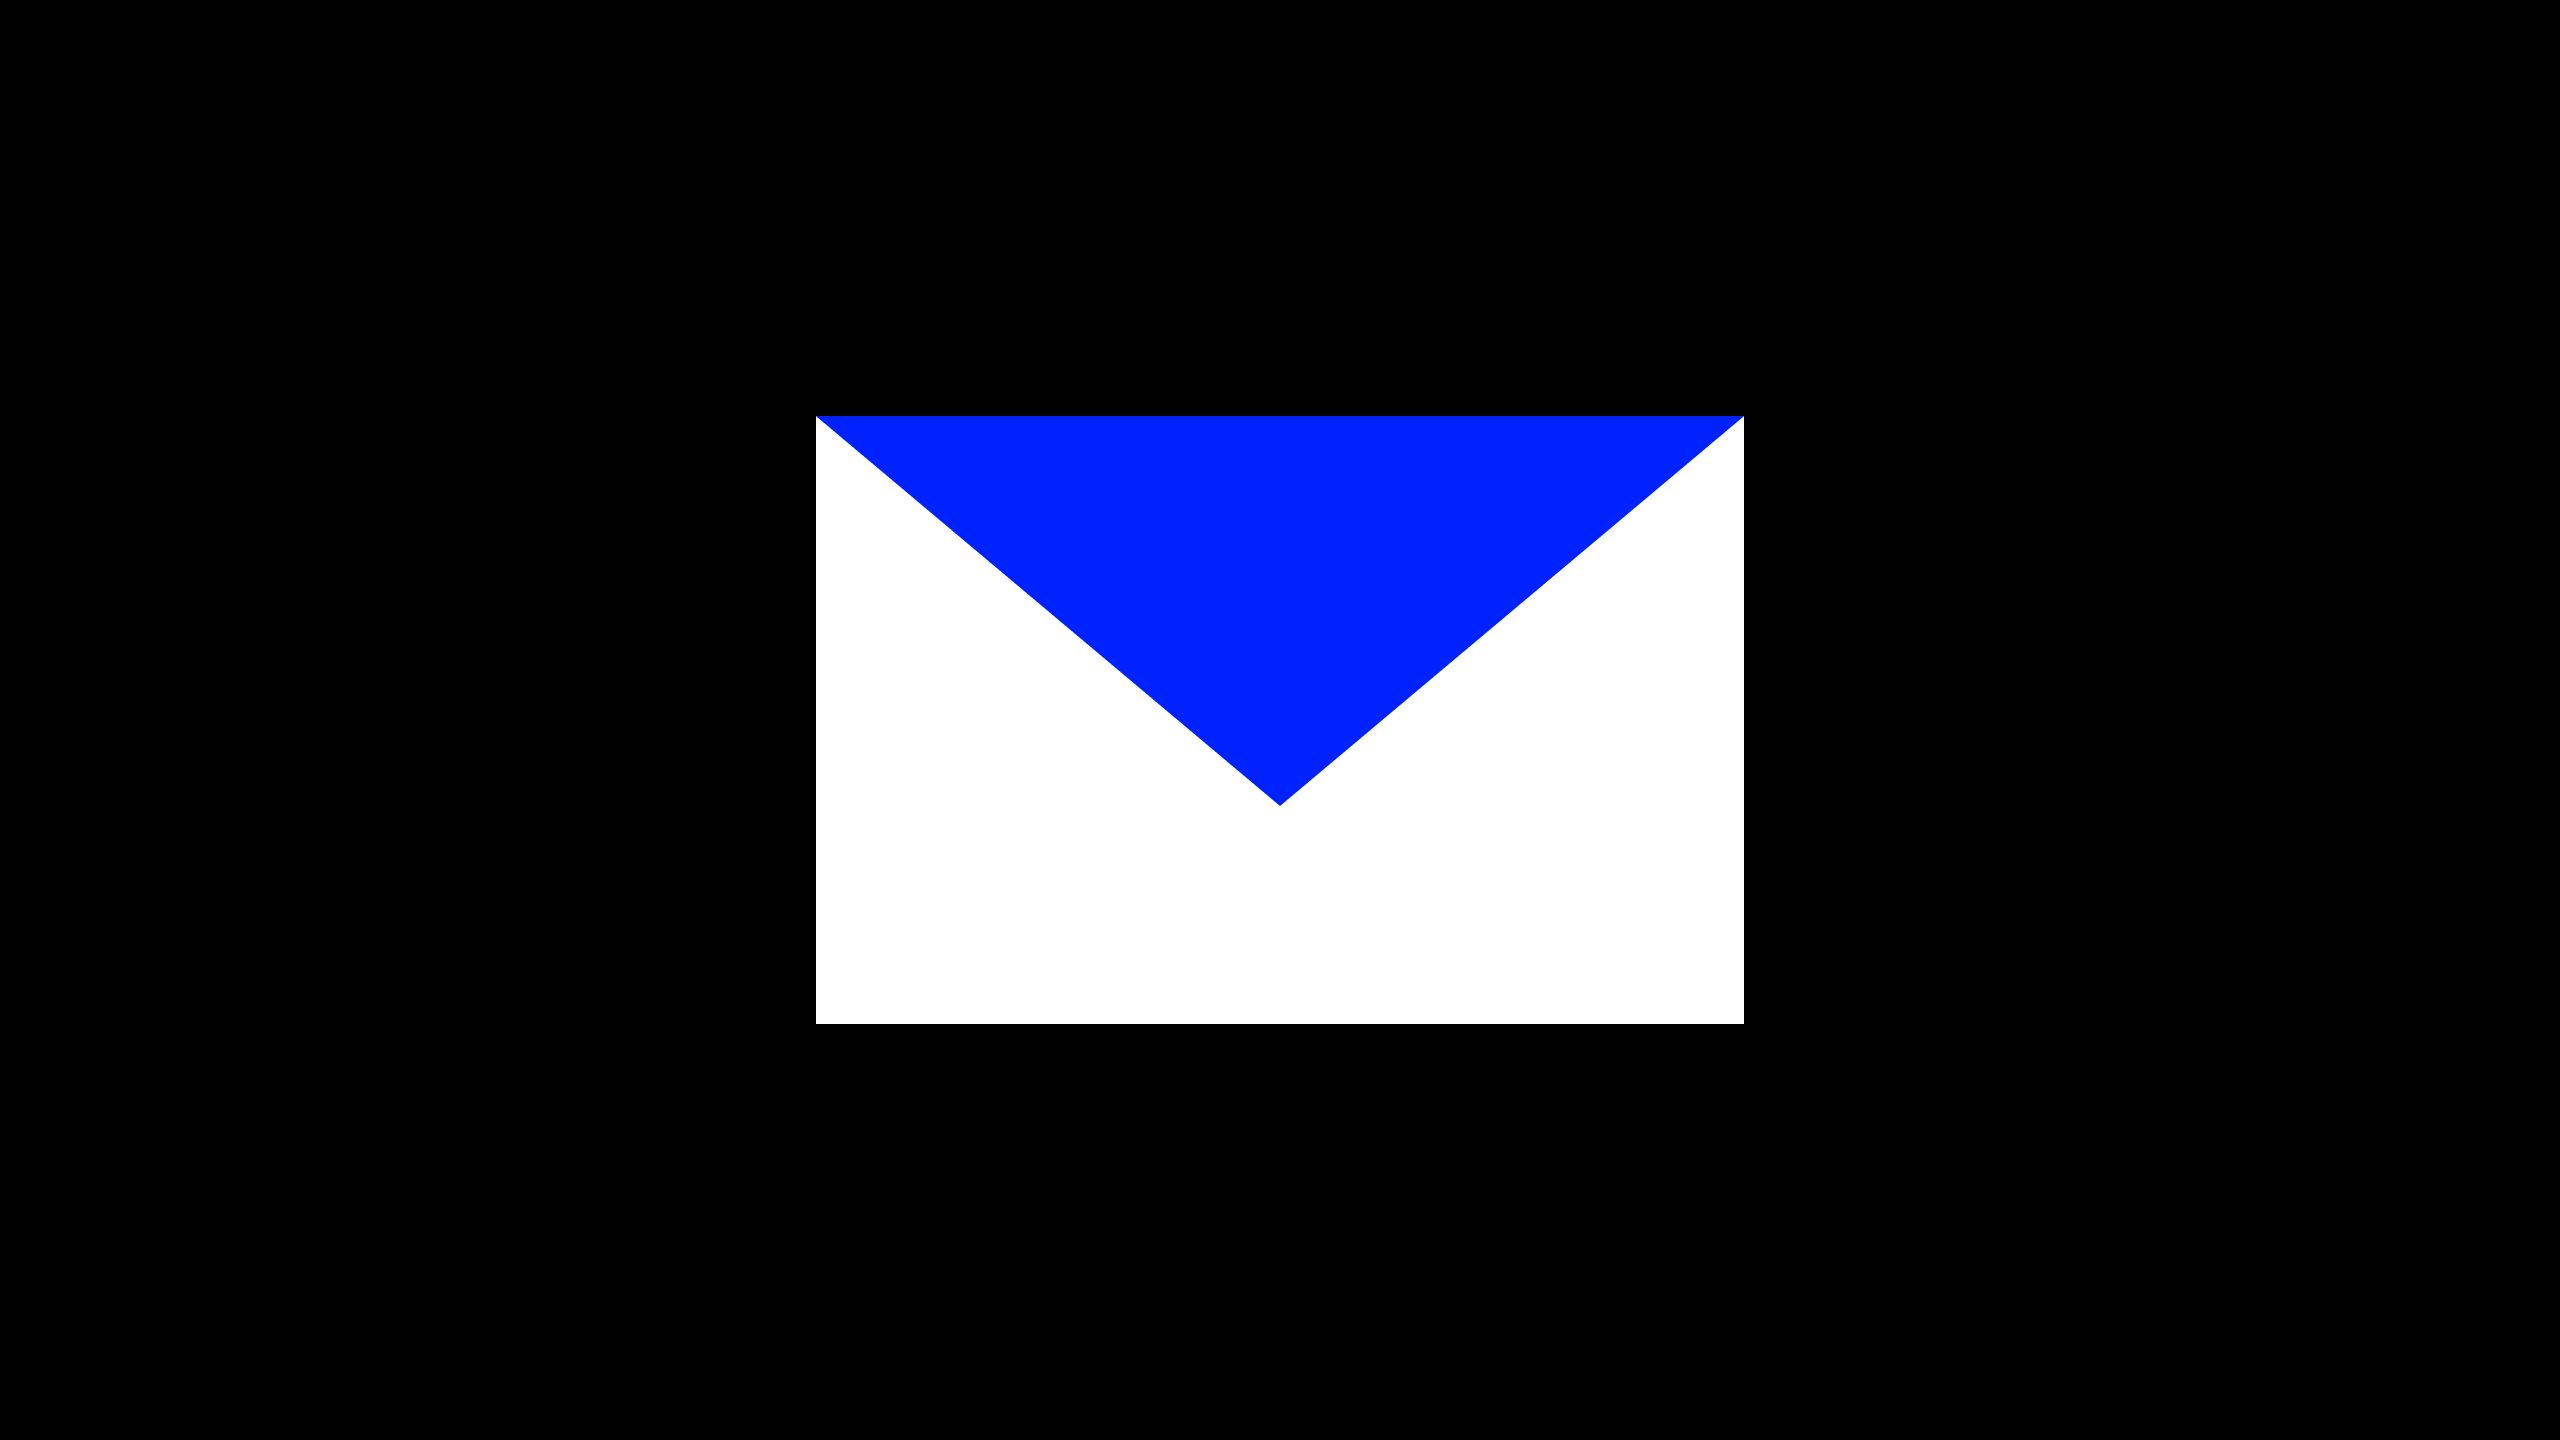 One way to do email hero image